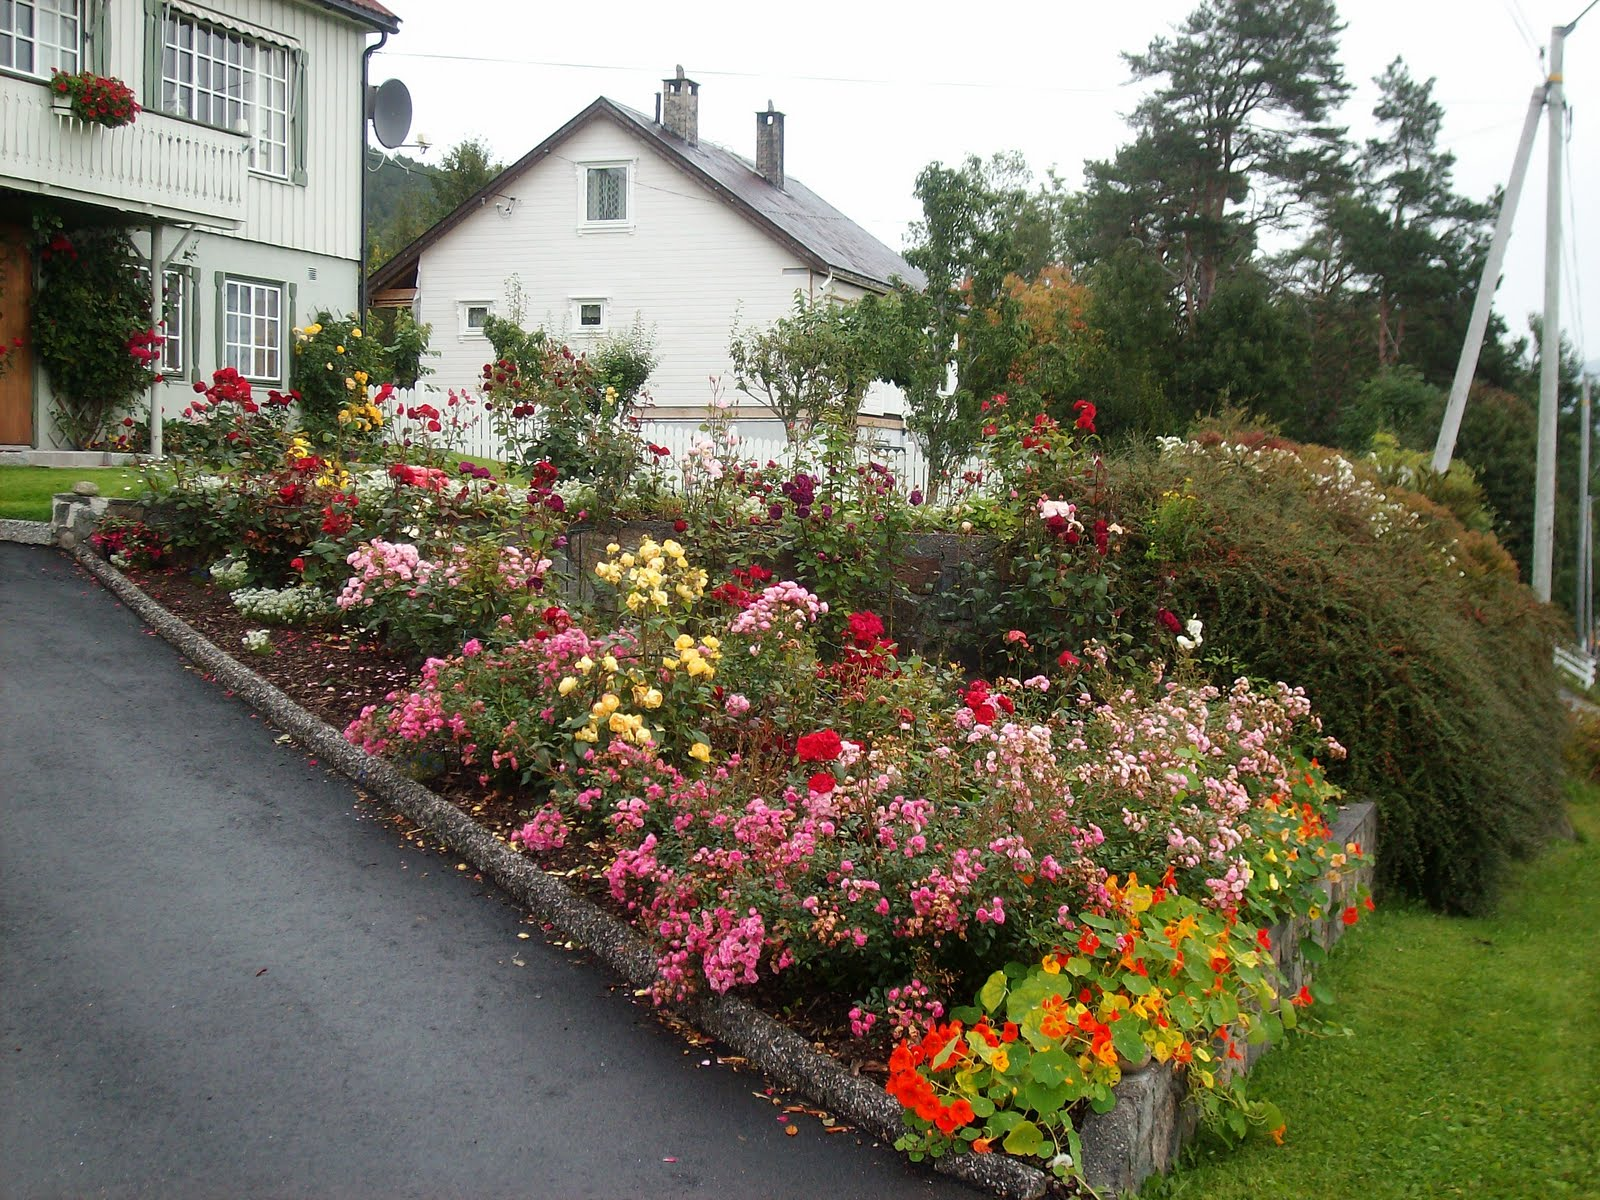 Apple Blossom Dreams: My Norway - Day 12 - Hager (Gardens)